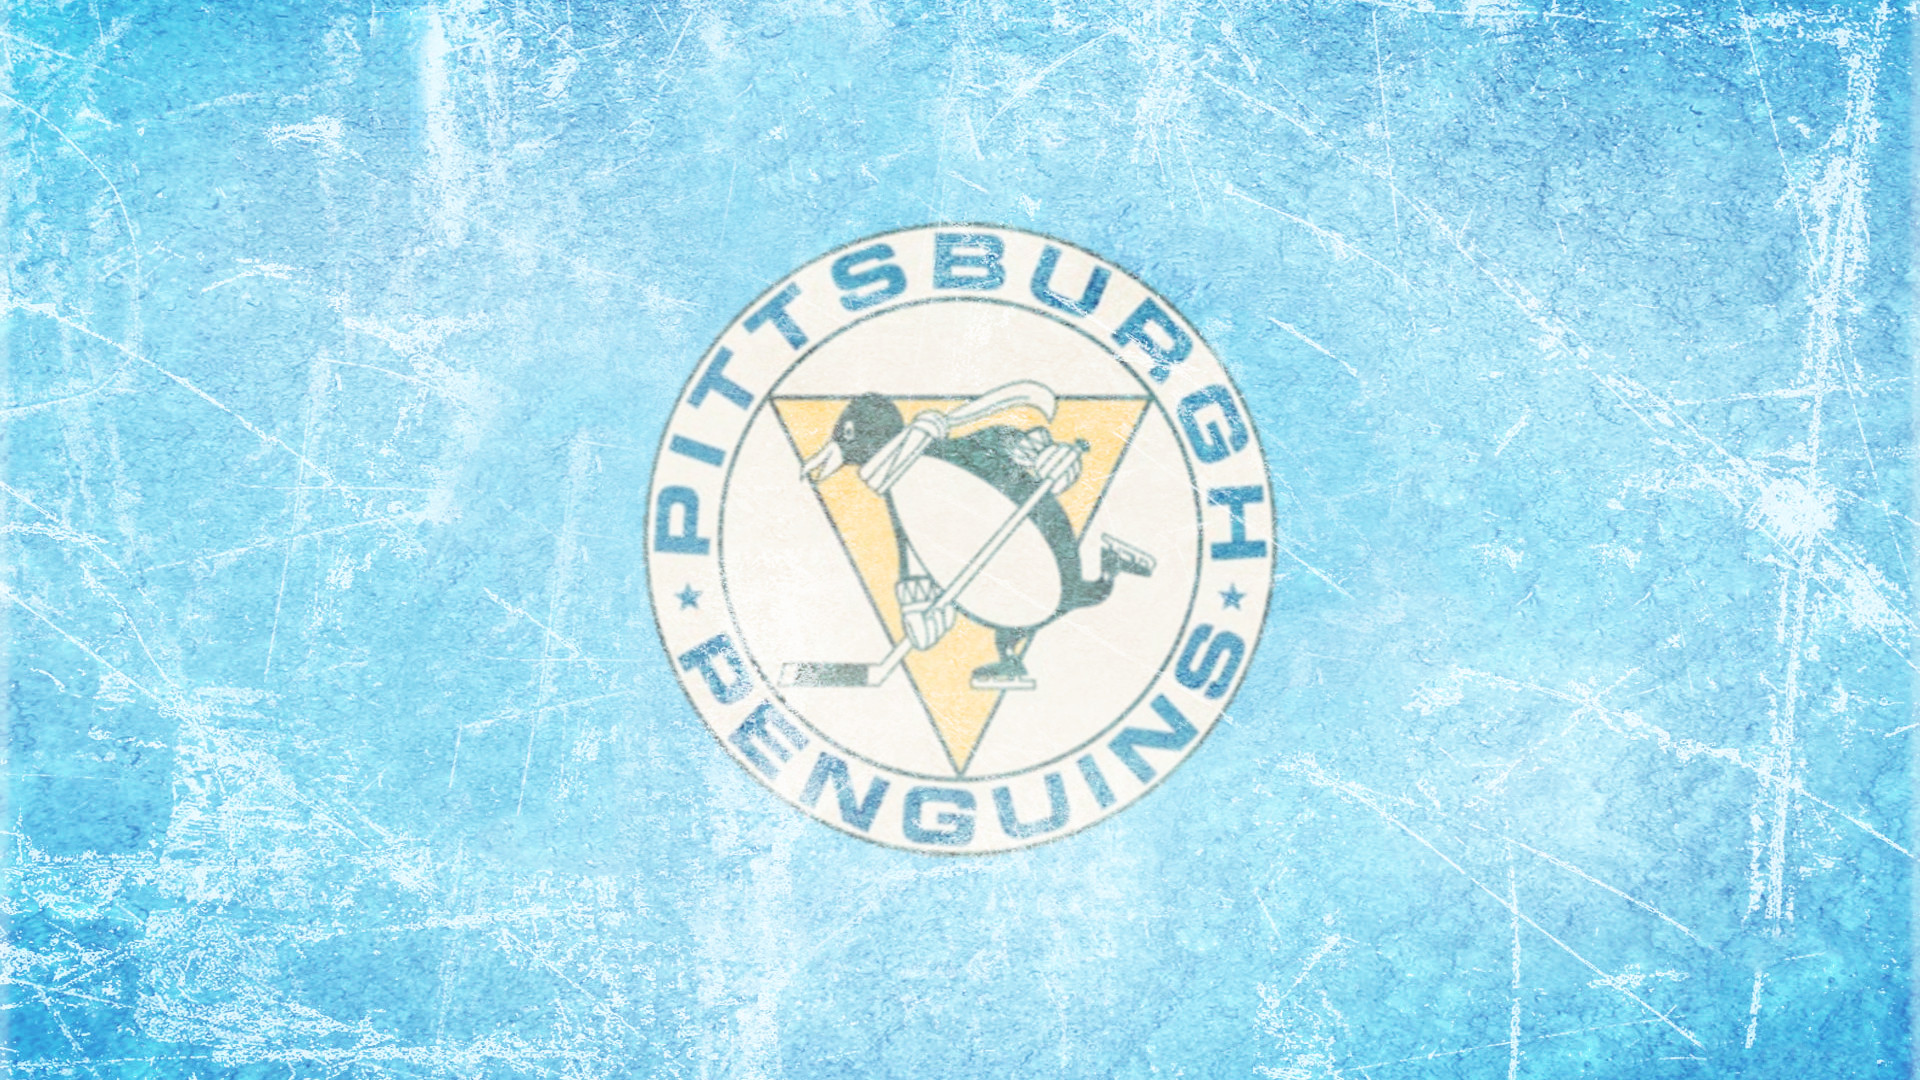 1920x1080 15 HD Pittsburgh Penguins Desktop Wallpapers For Free Download